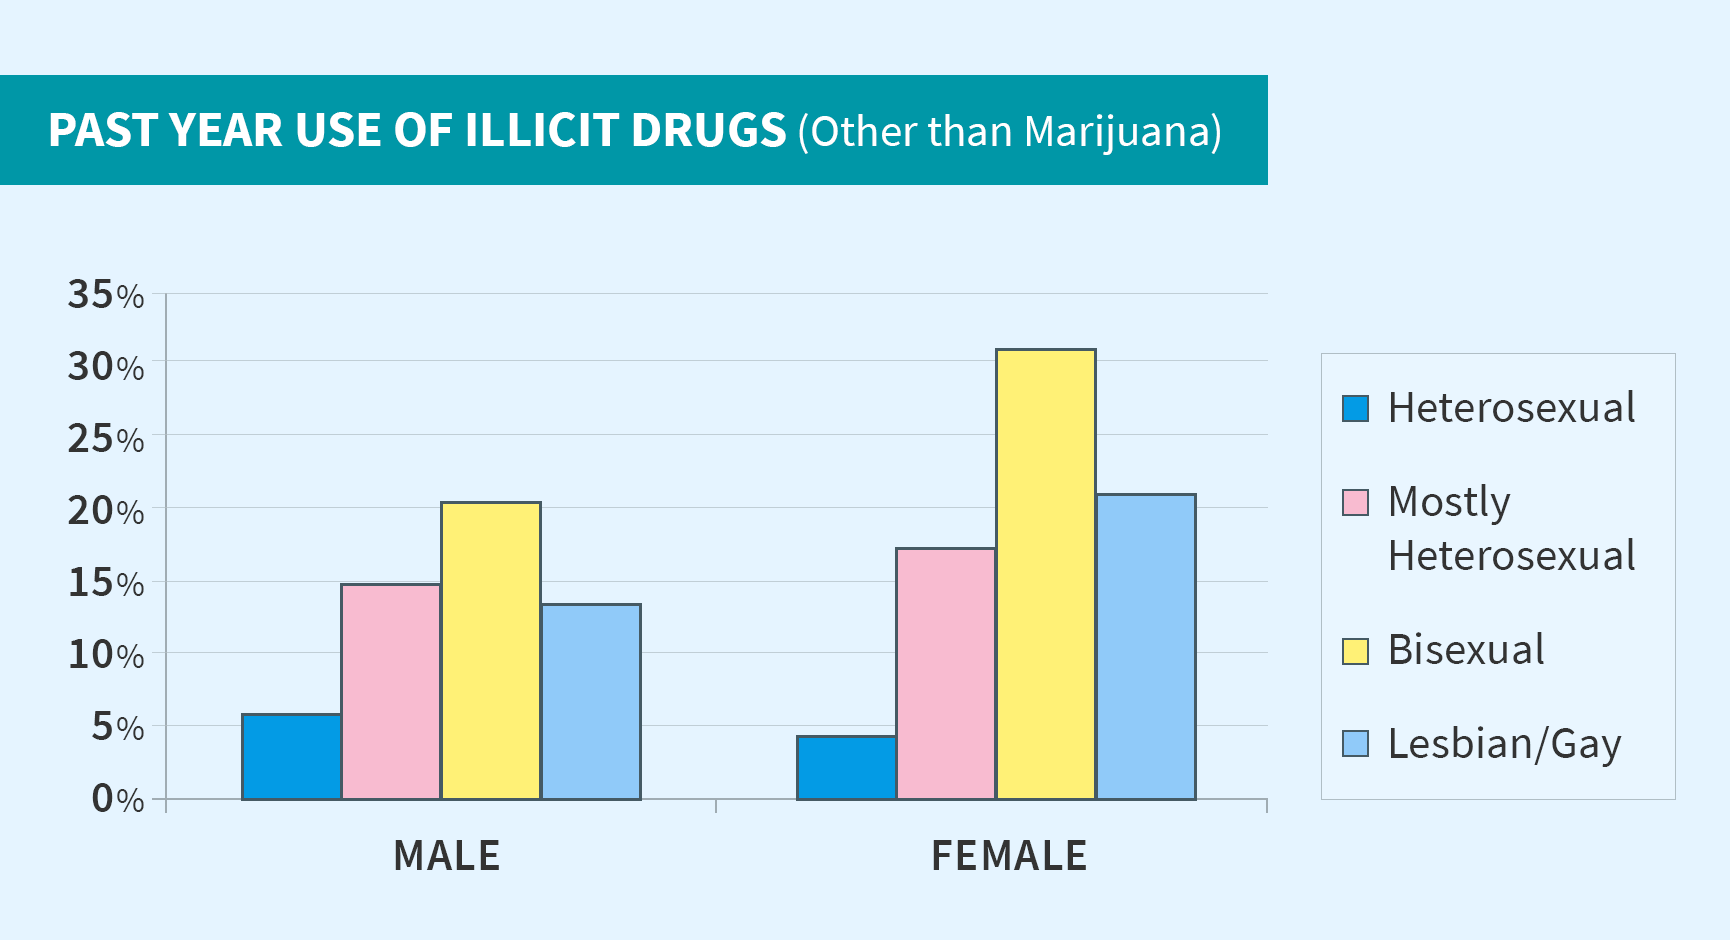 Past-Year-use-of-Illicit-Drugs-Other-than-Marijuana Table